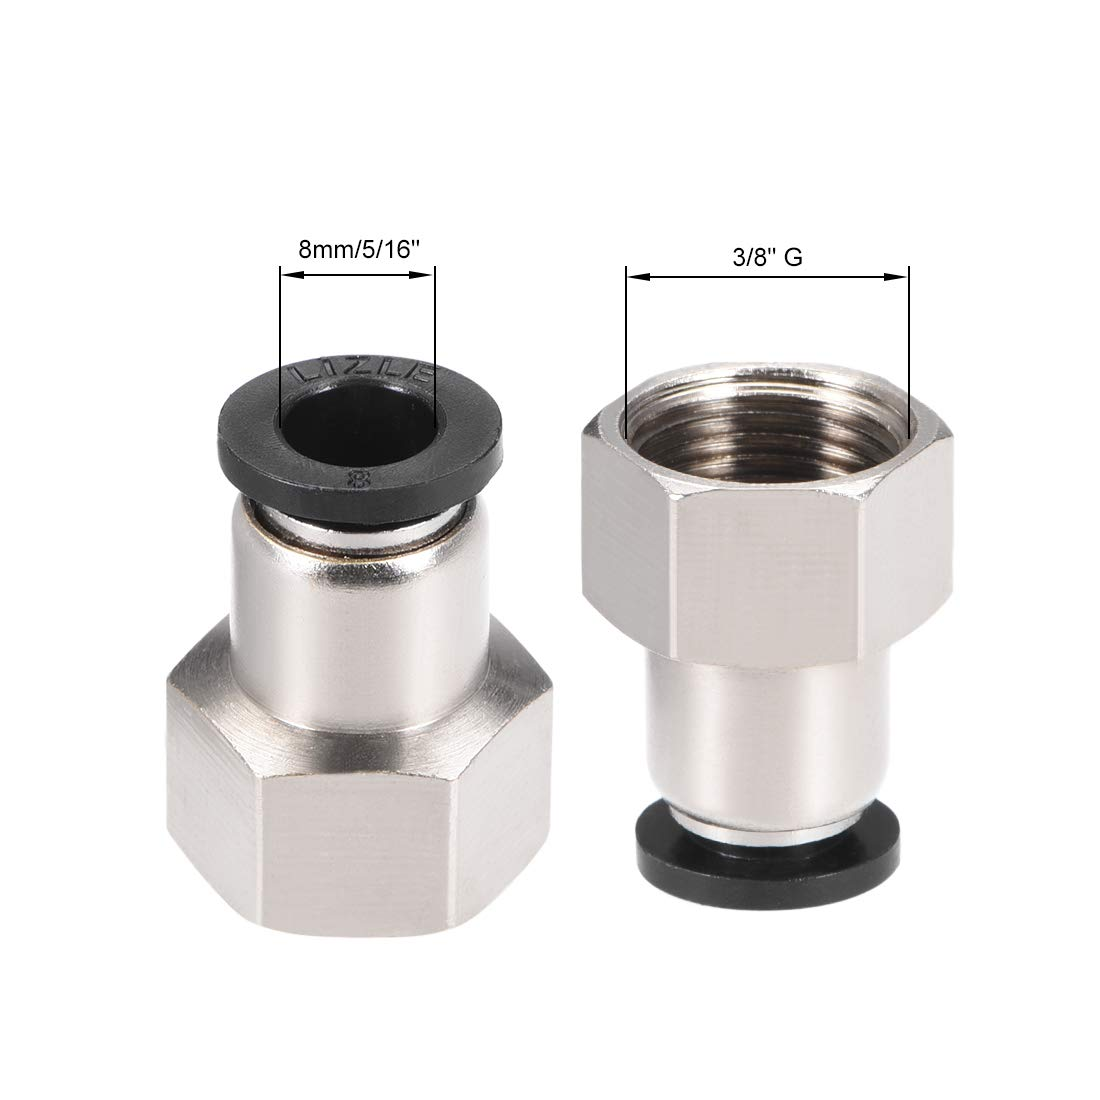 uxcell Straight Pneumatic Push to Connect Female Quick Fitting Adapter 4mm or 5//32 Tube OD x 1//4 G Silver Tone 4pcs